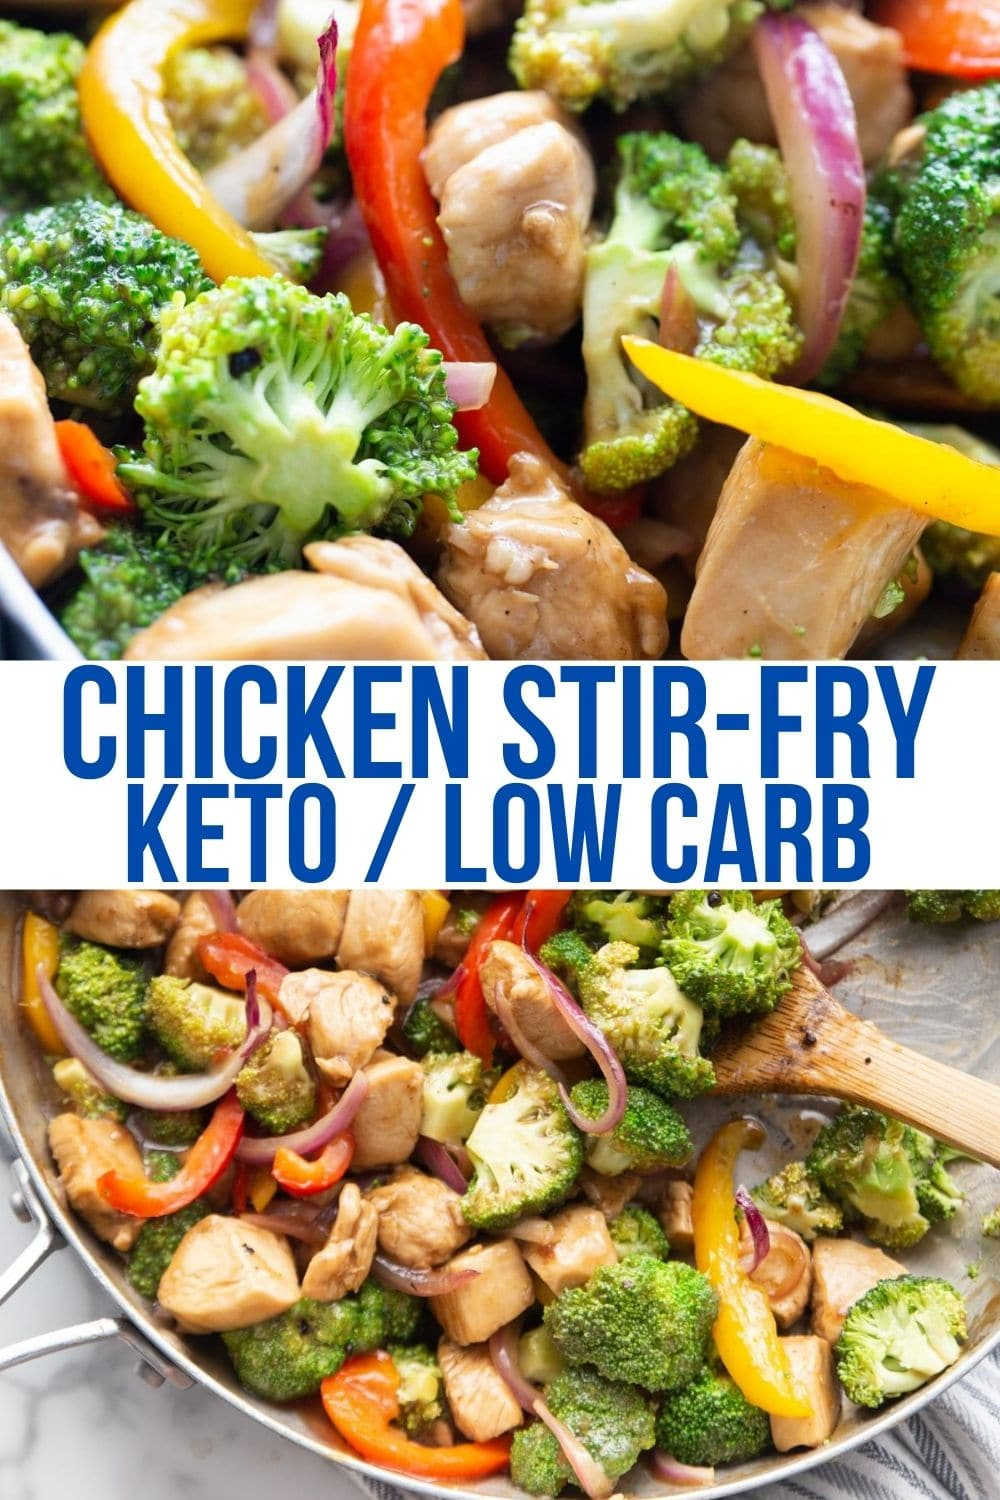 keto stir fry with chicken and broccoli and veggies in a skillet